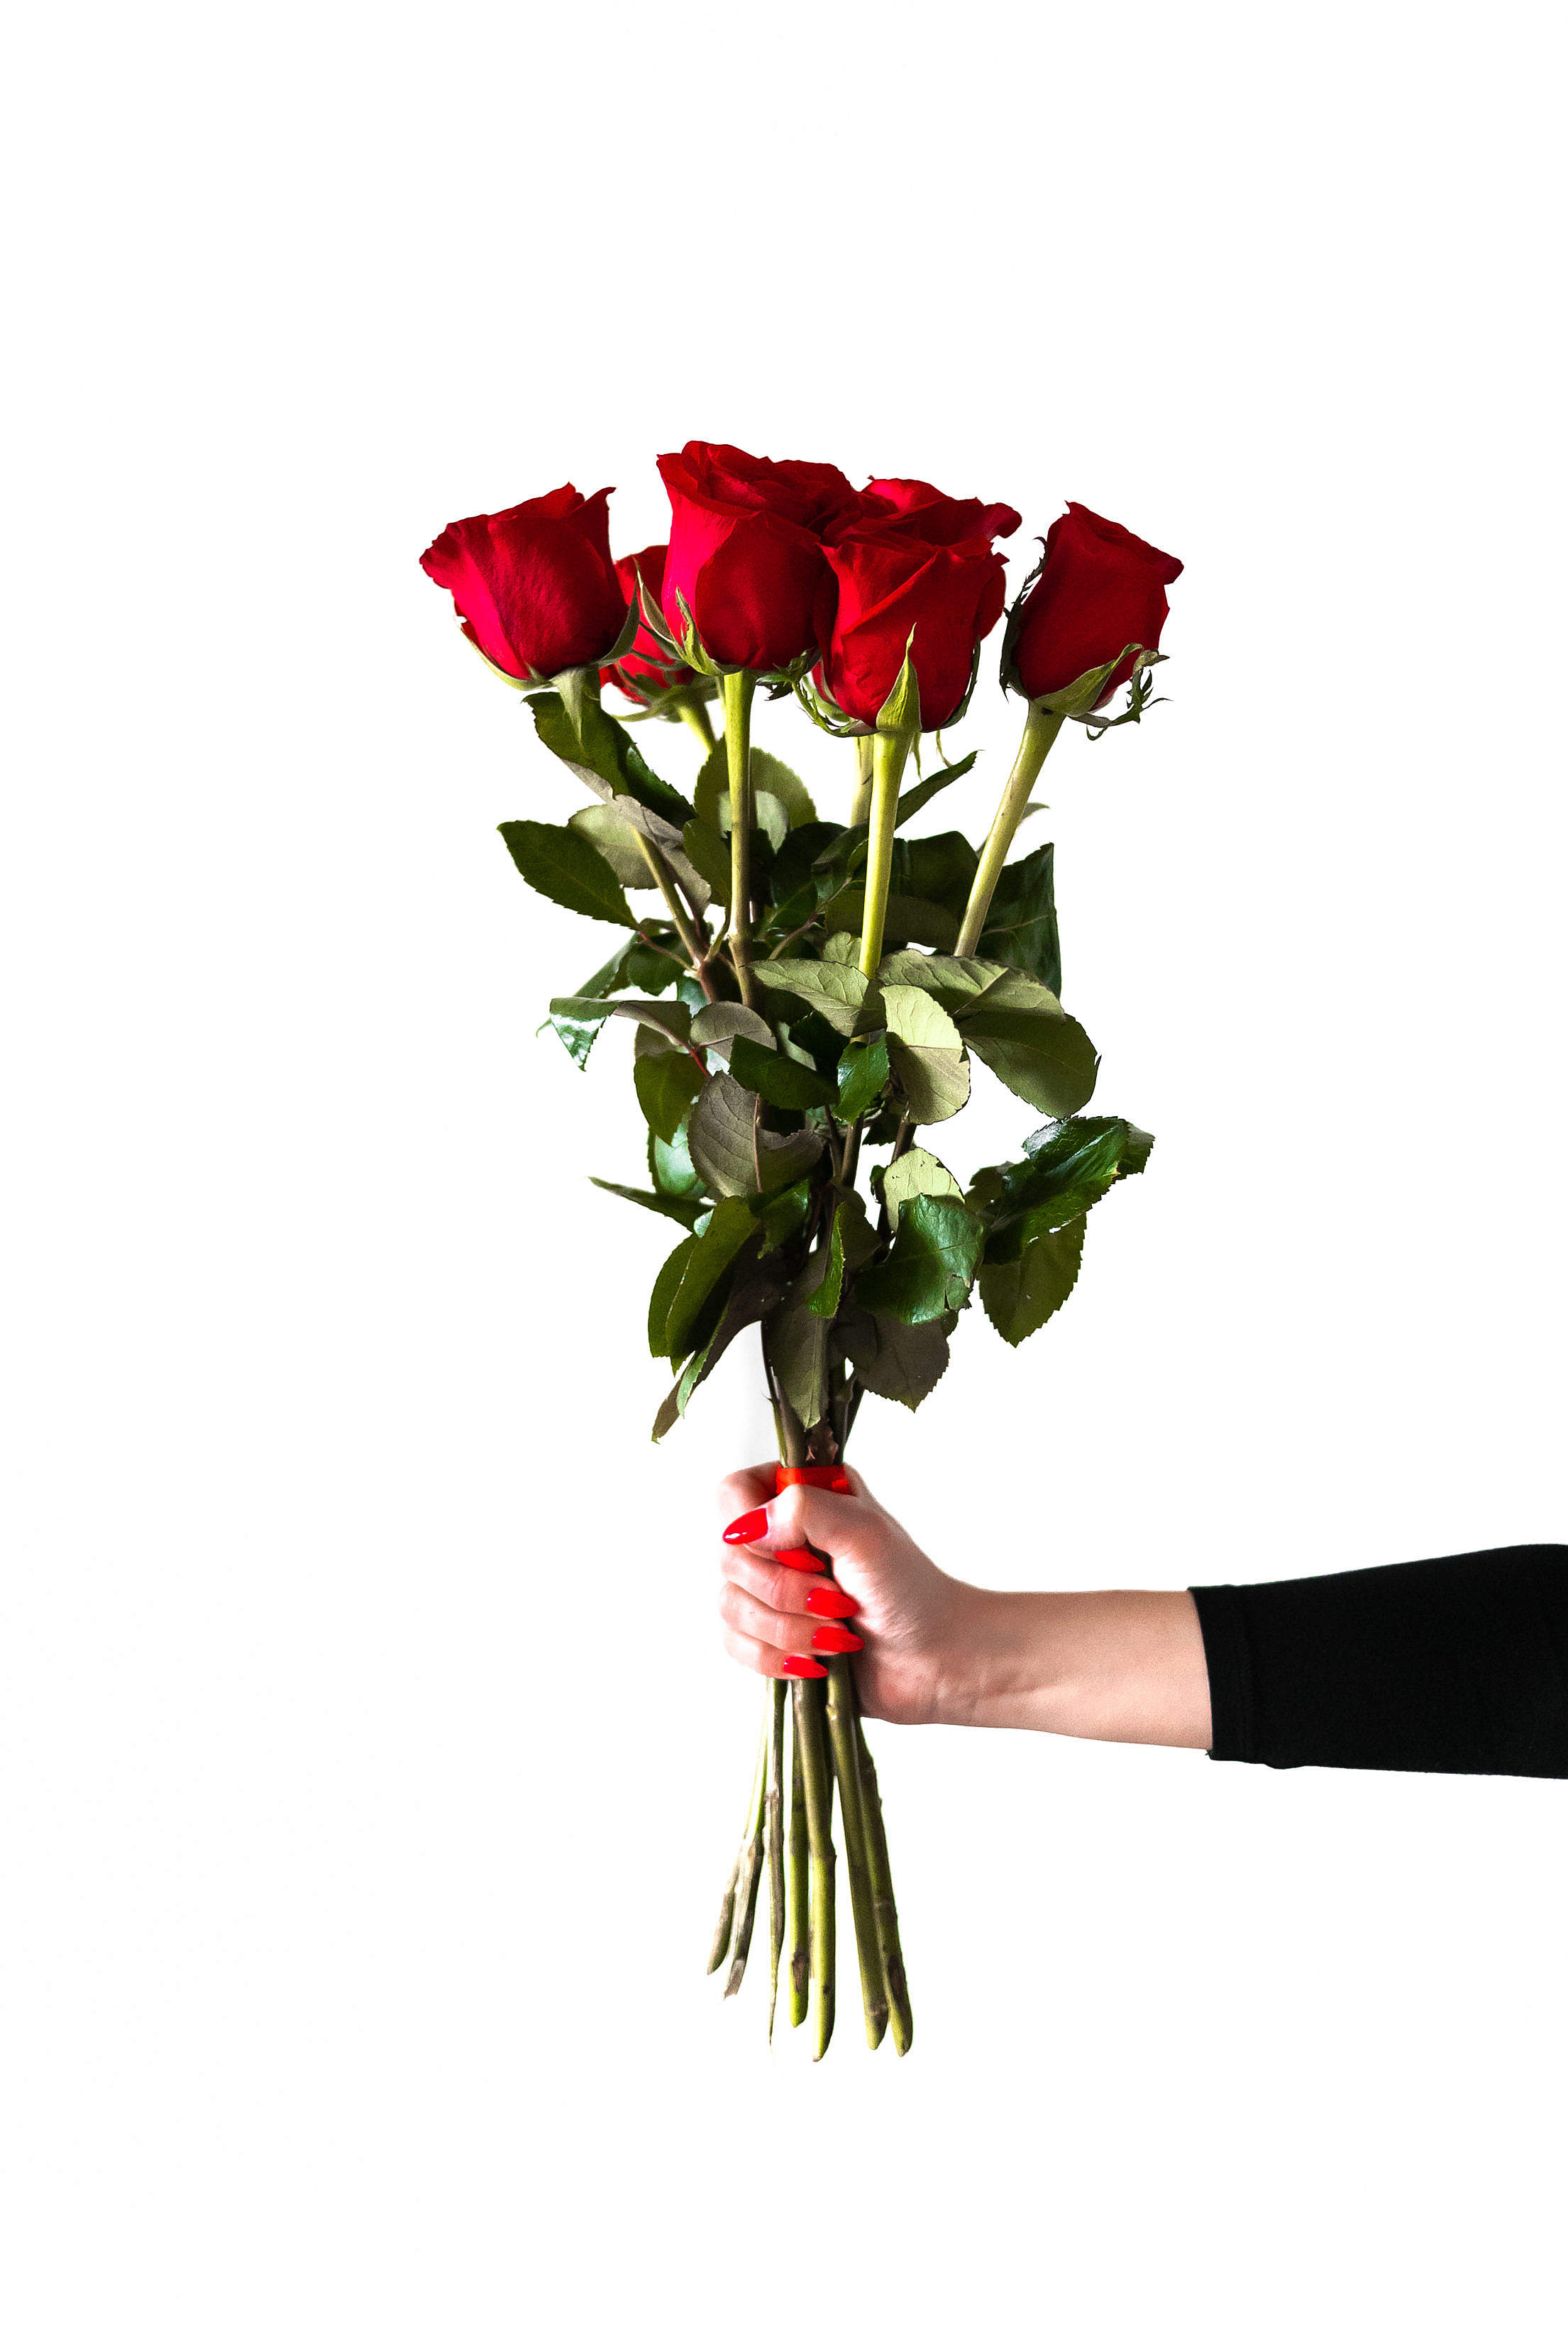 Red Roses in Woman's Hand Free Stock Photo